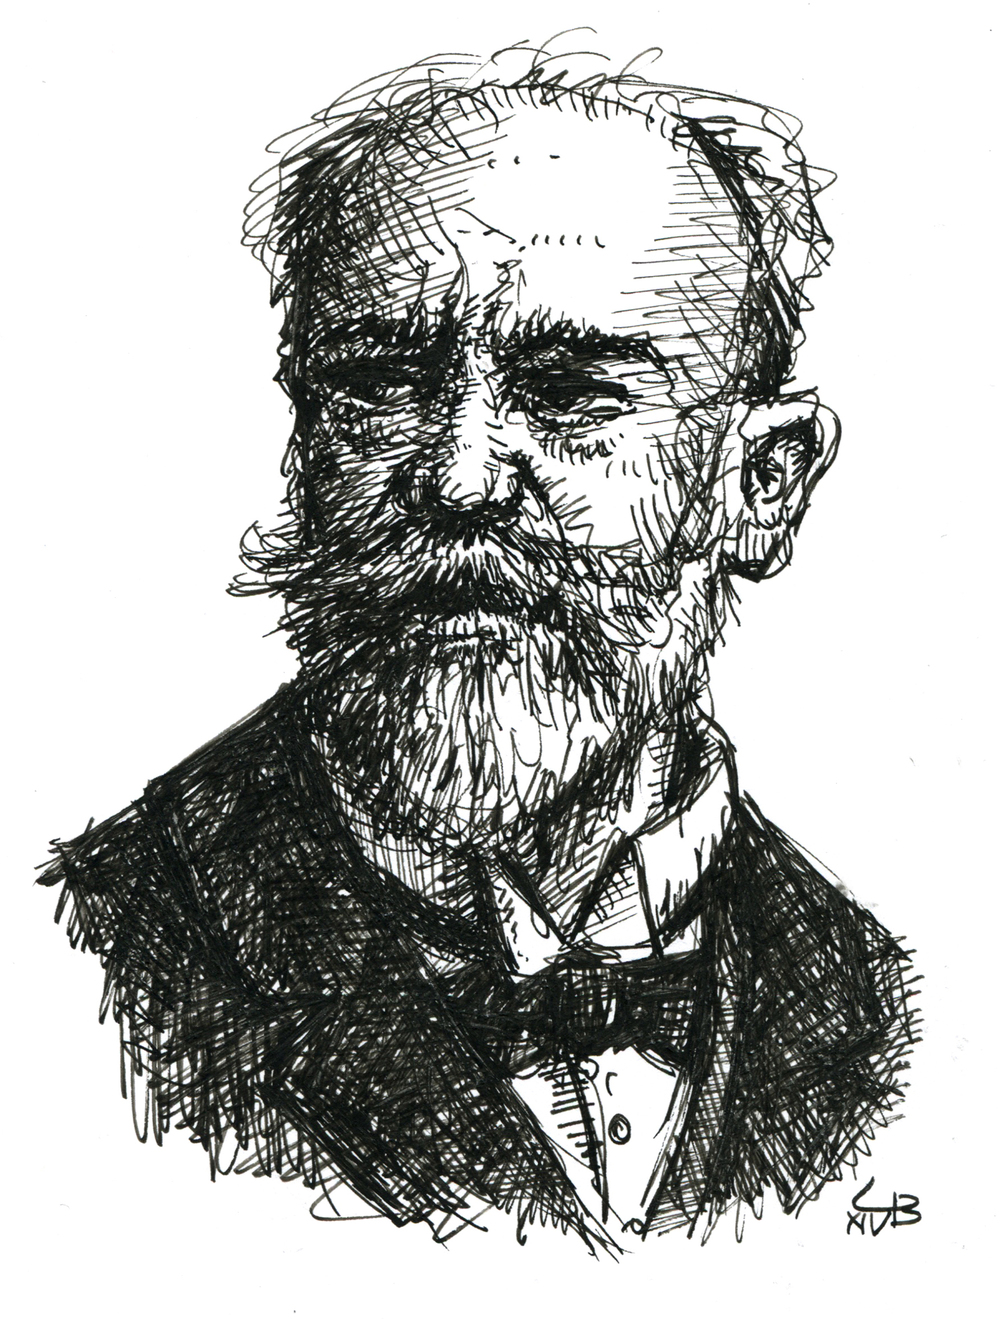 Dvorak_website.jpg